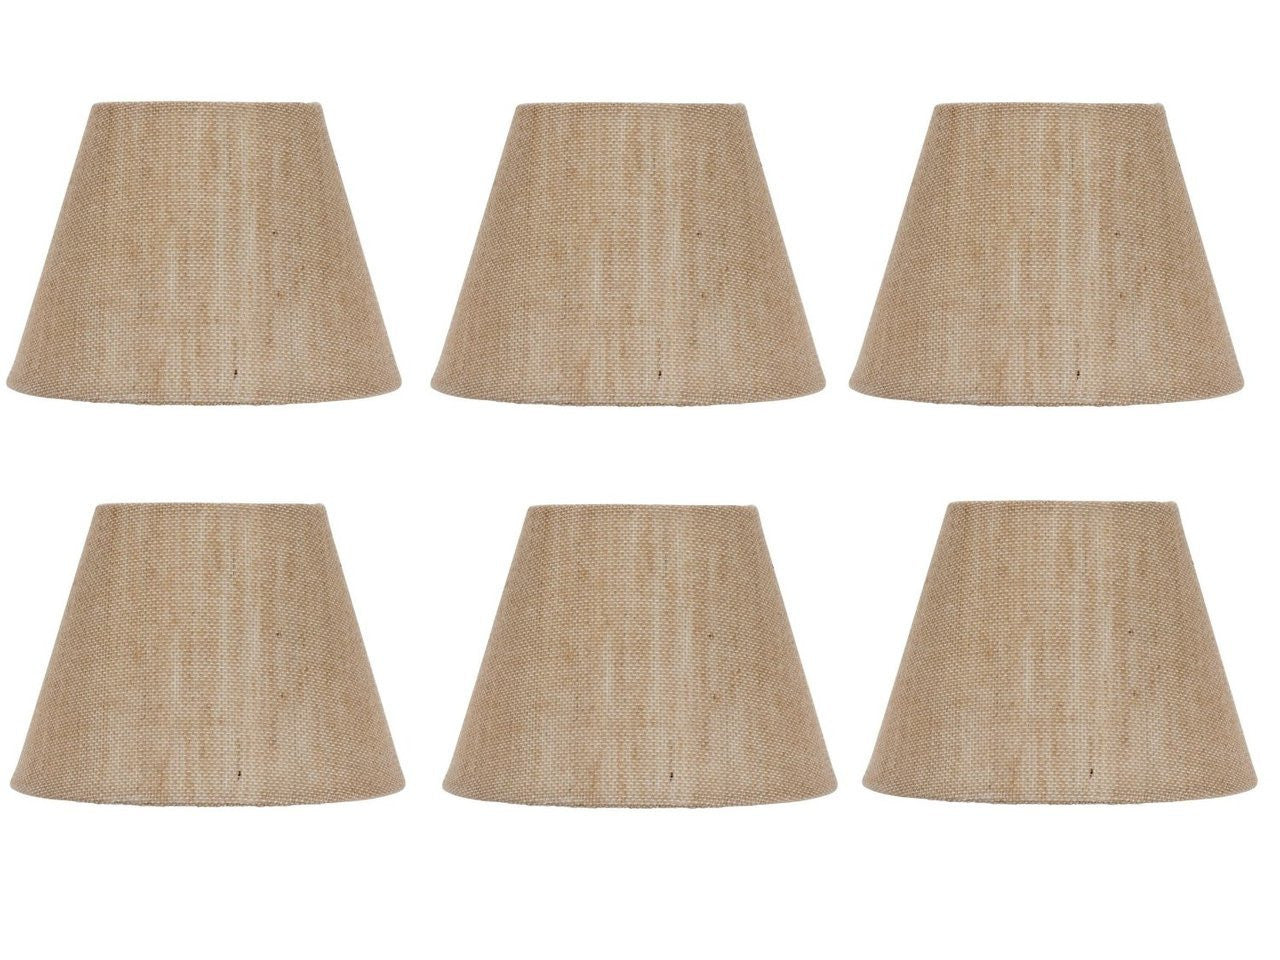 Set of six european drum style chandelier lamp shades 6 inch upgradelights set of six european drum style chandelier lamp shades 6 inch natural burlap clips onto mozeypictures Choice Image